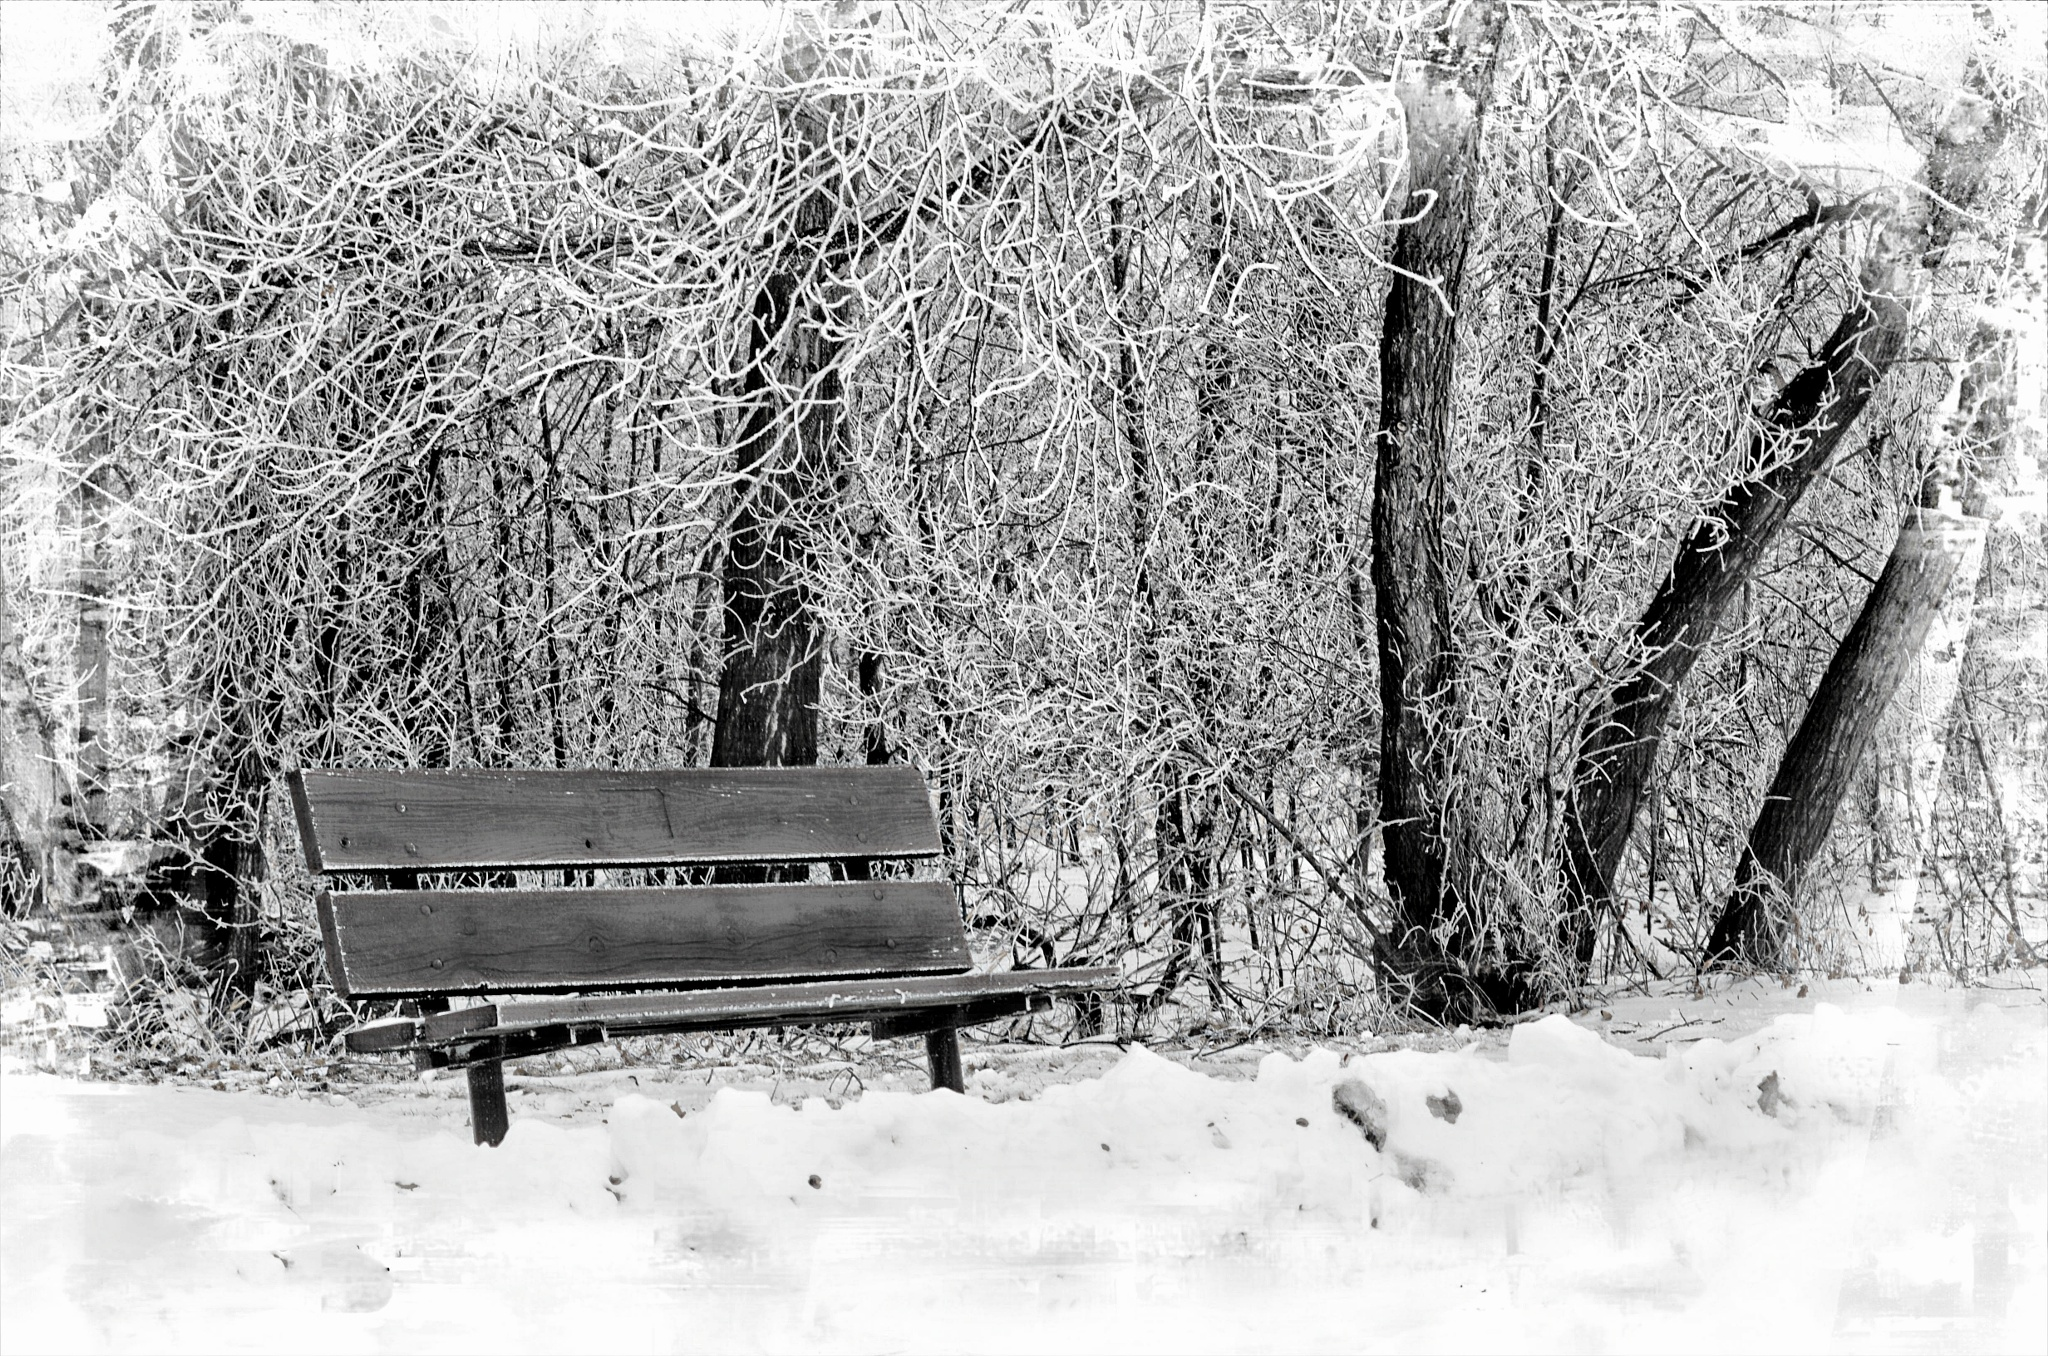 Empty Bench on a cold winters day by Kimberly Ronan